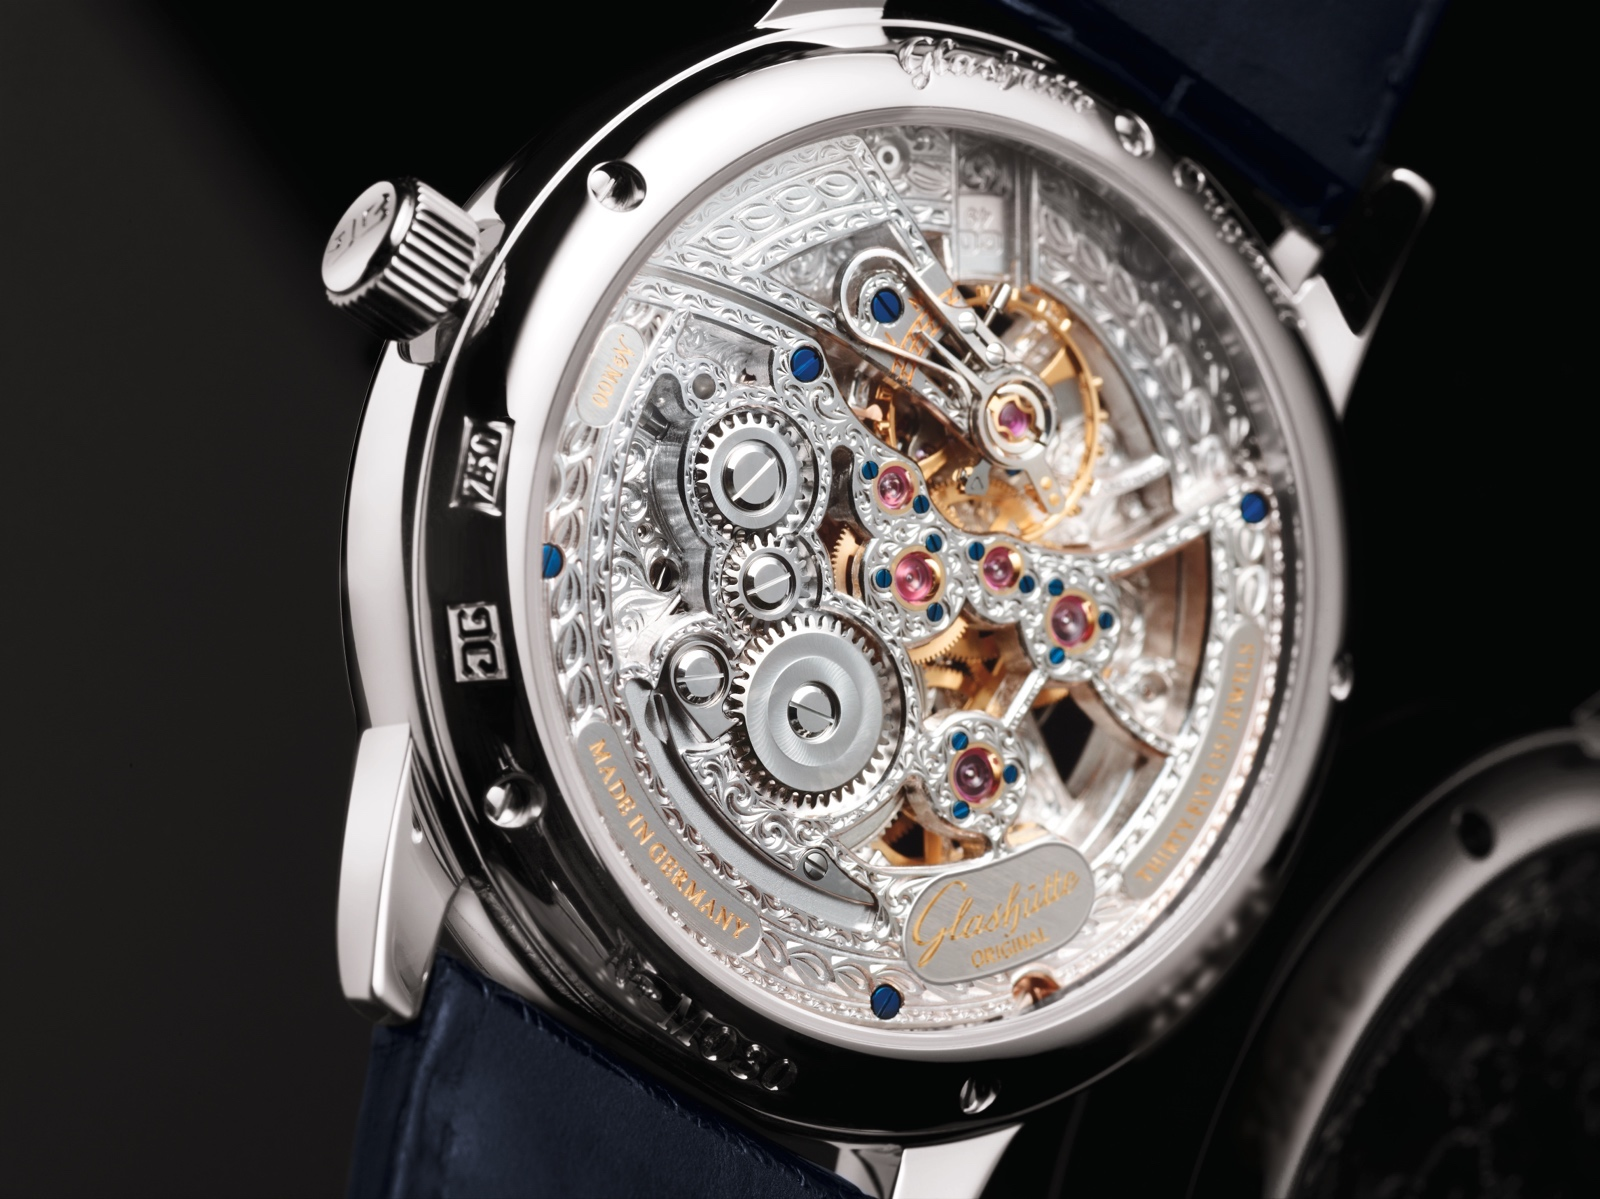 glashutte-original-senator-moon-phase-skeletonized-edition-back